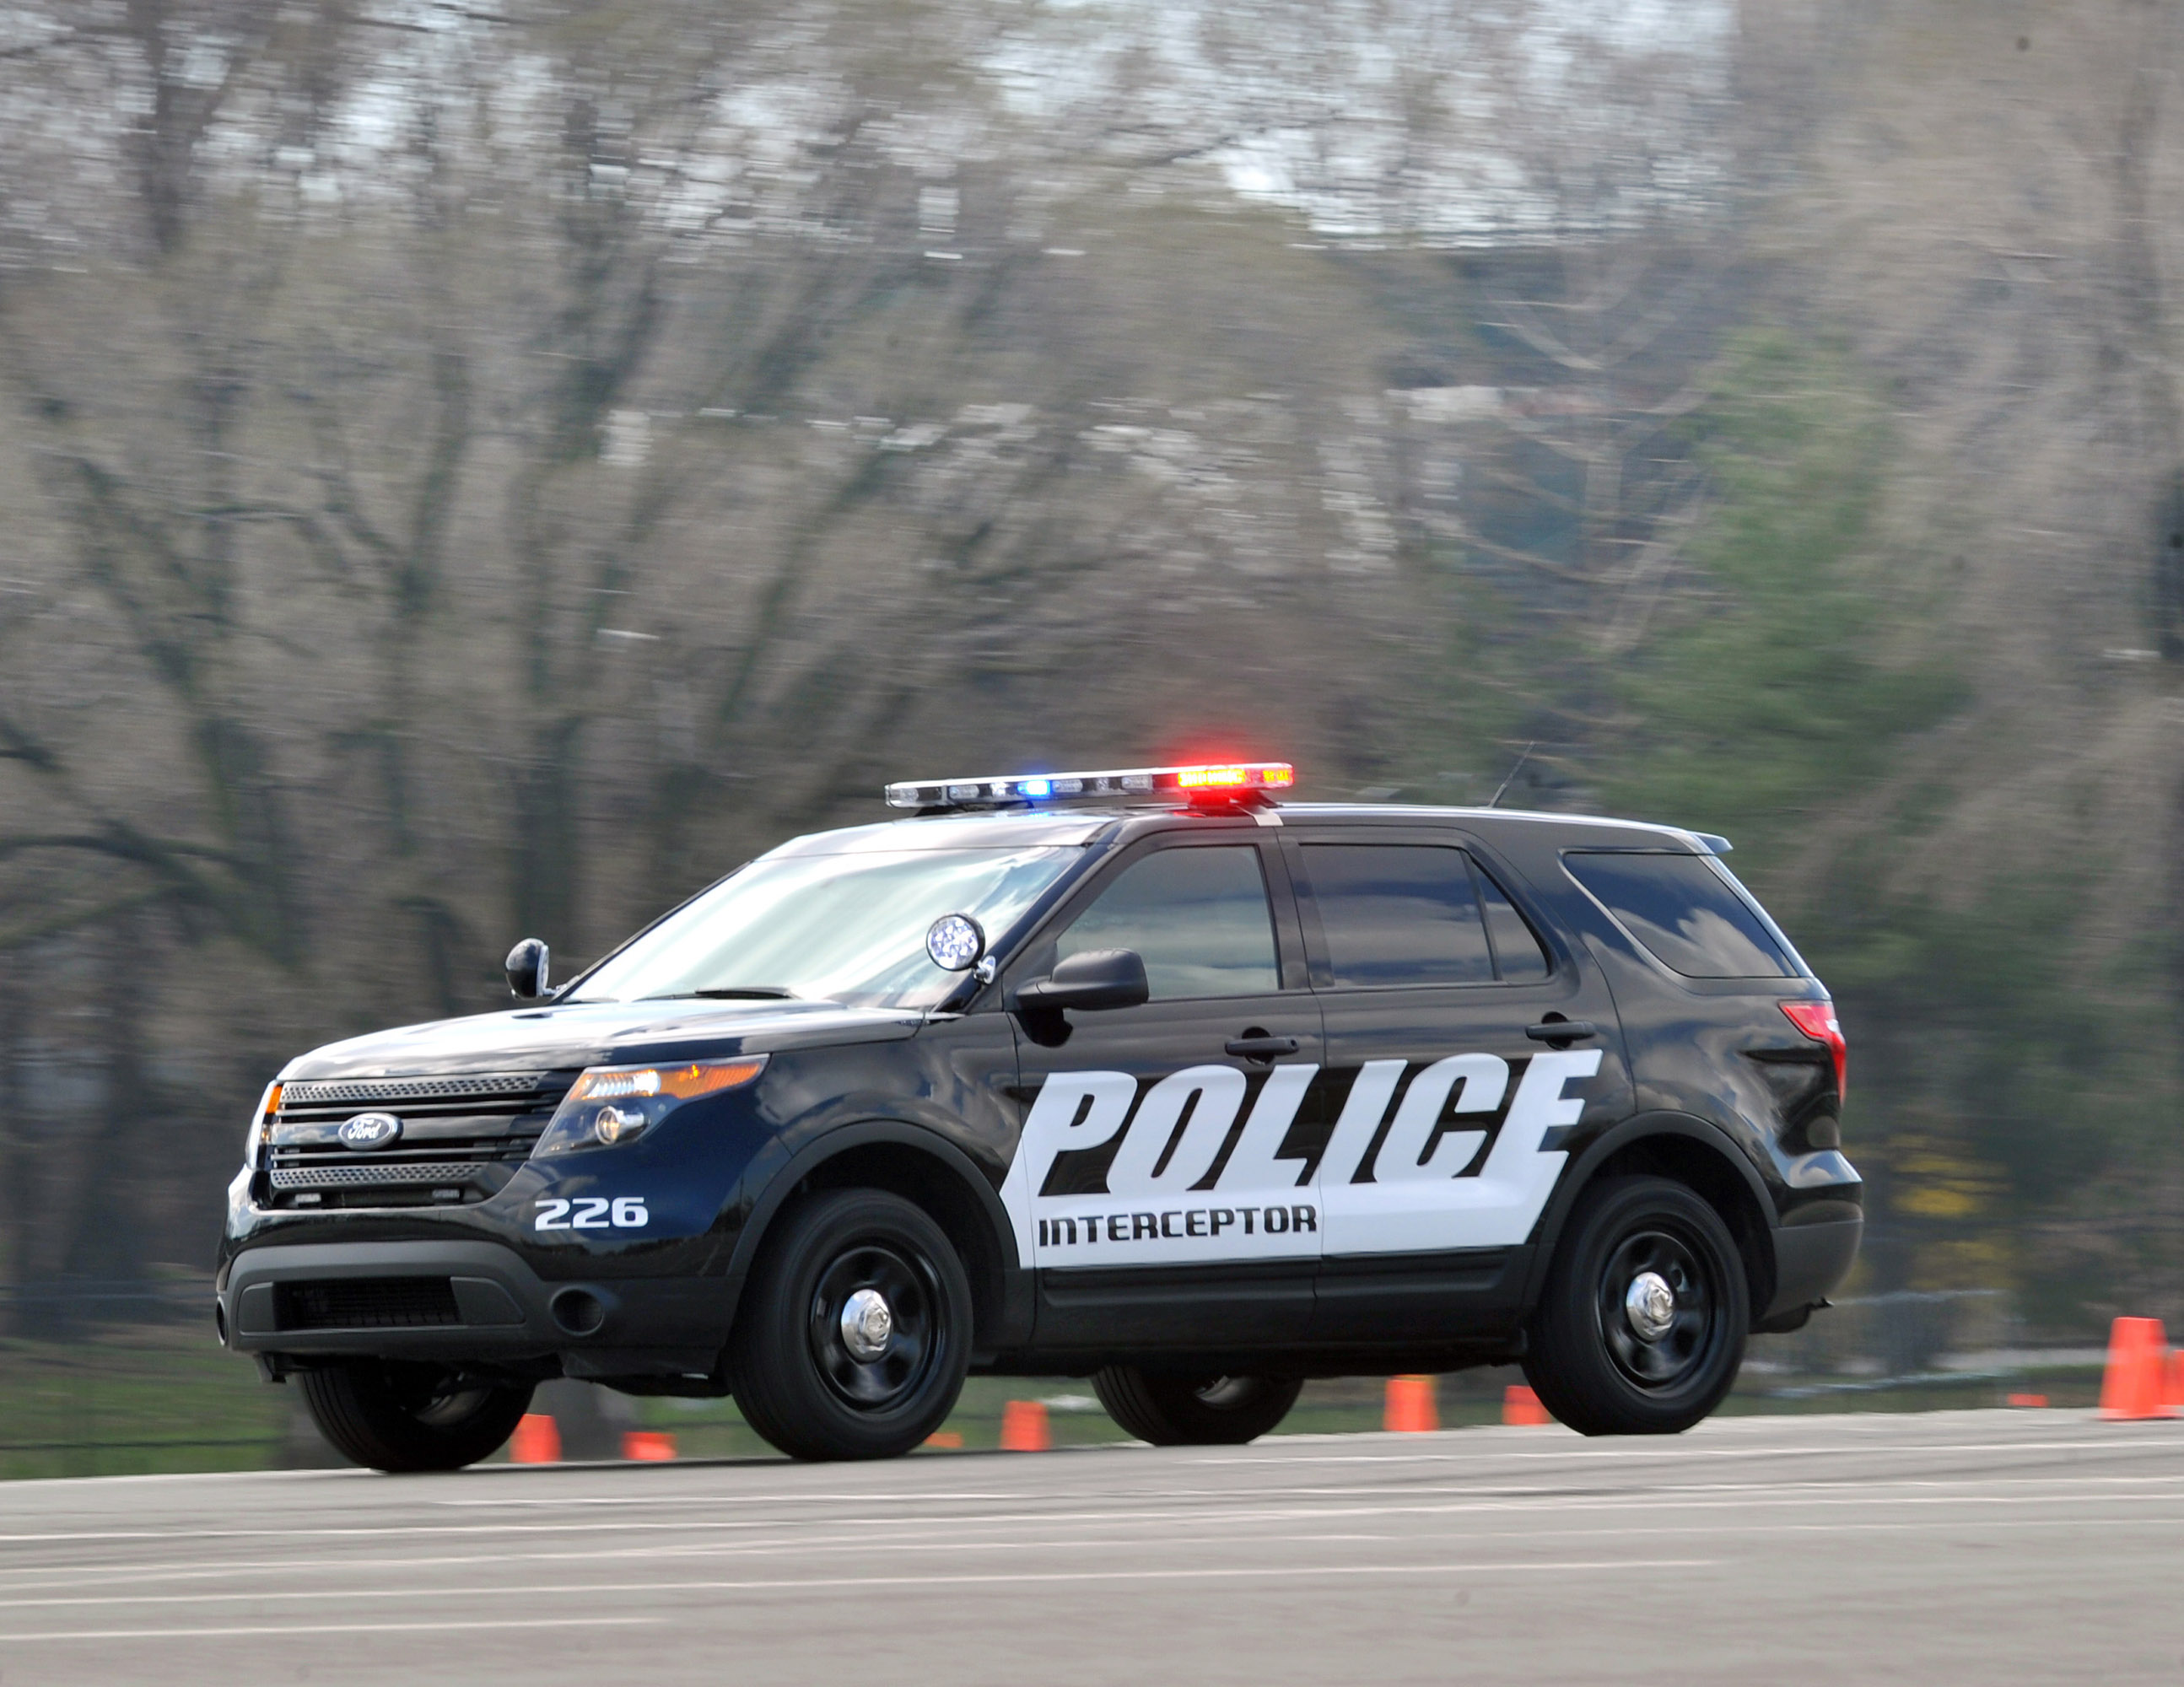 2011 Ford Police Interceptor Utility Vehicle photo - 1